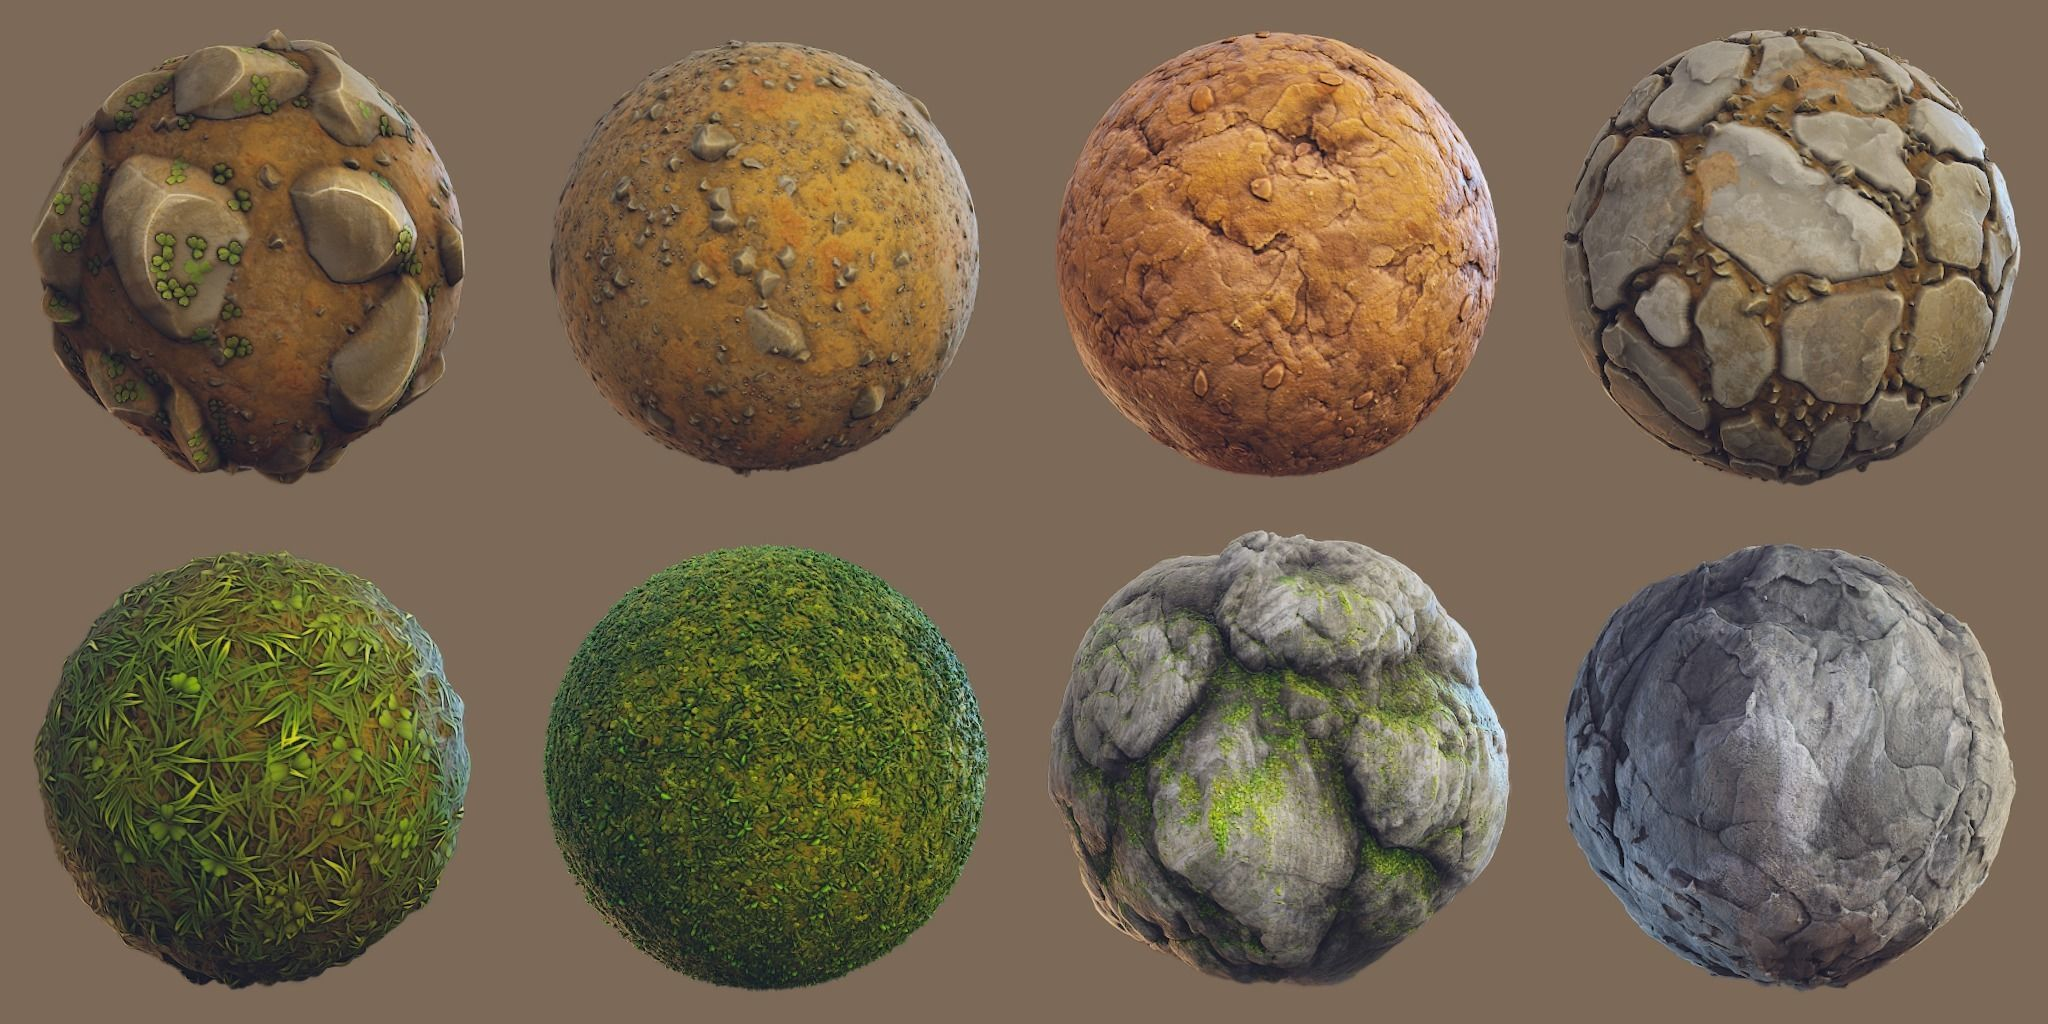 Forest - Stylized PBR materials